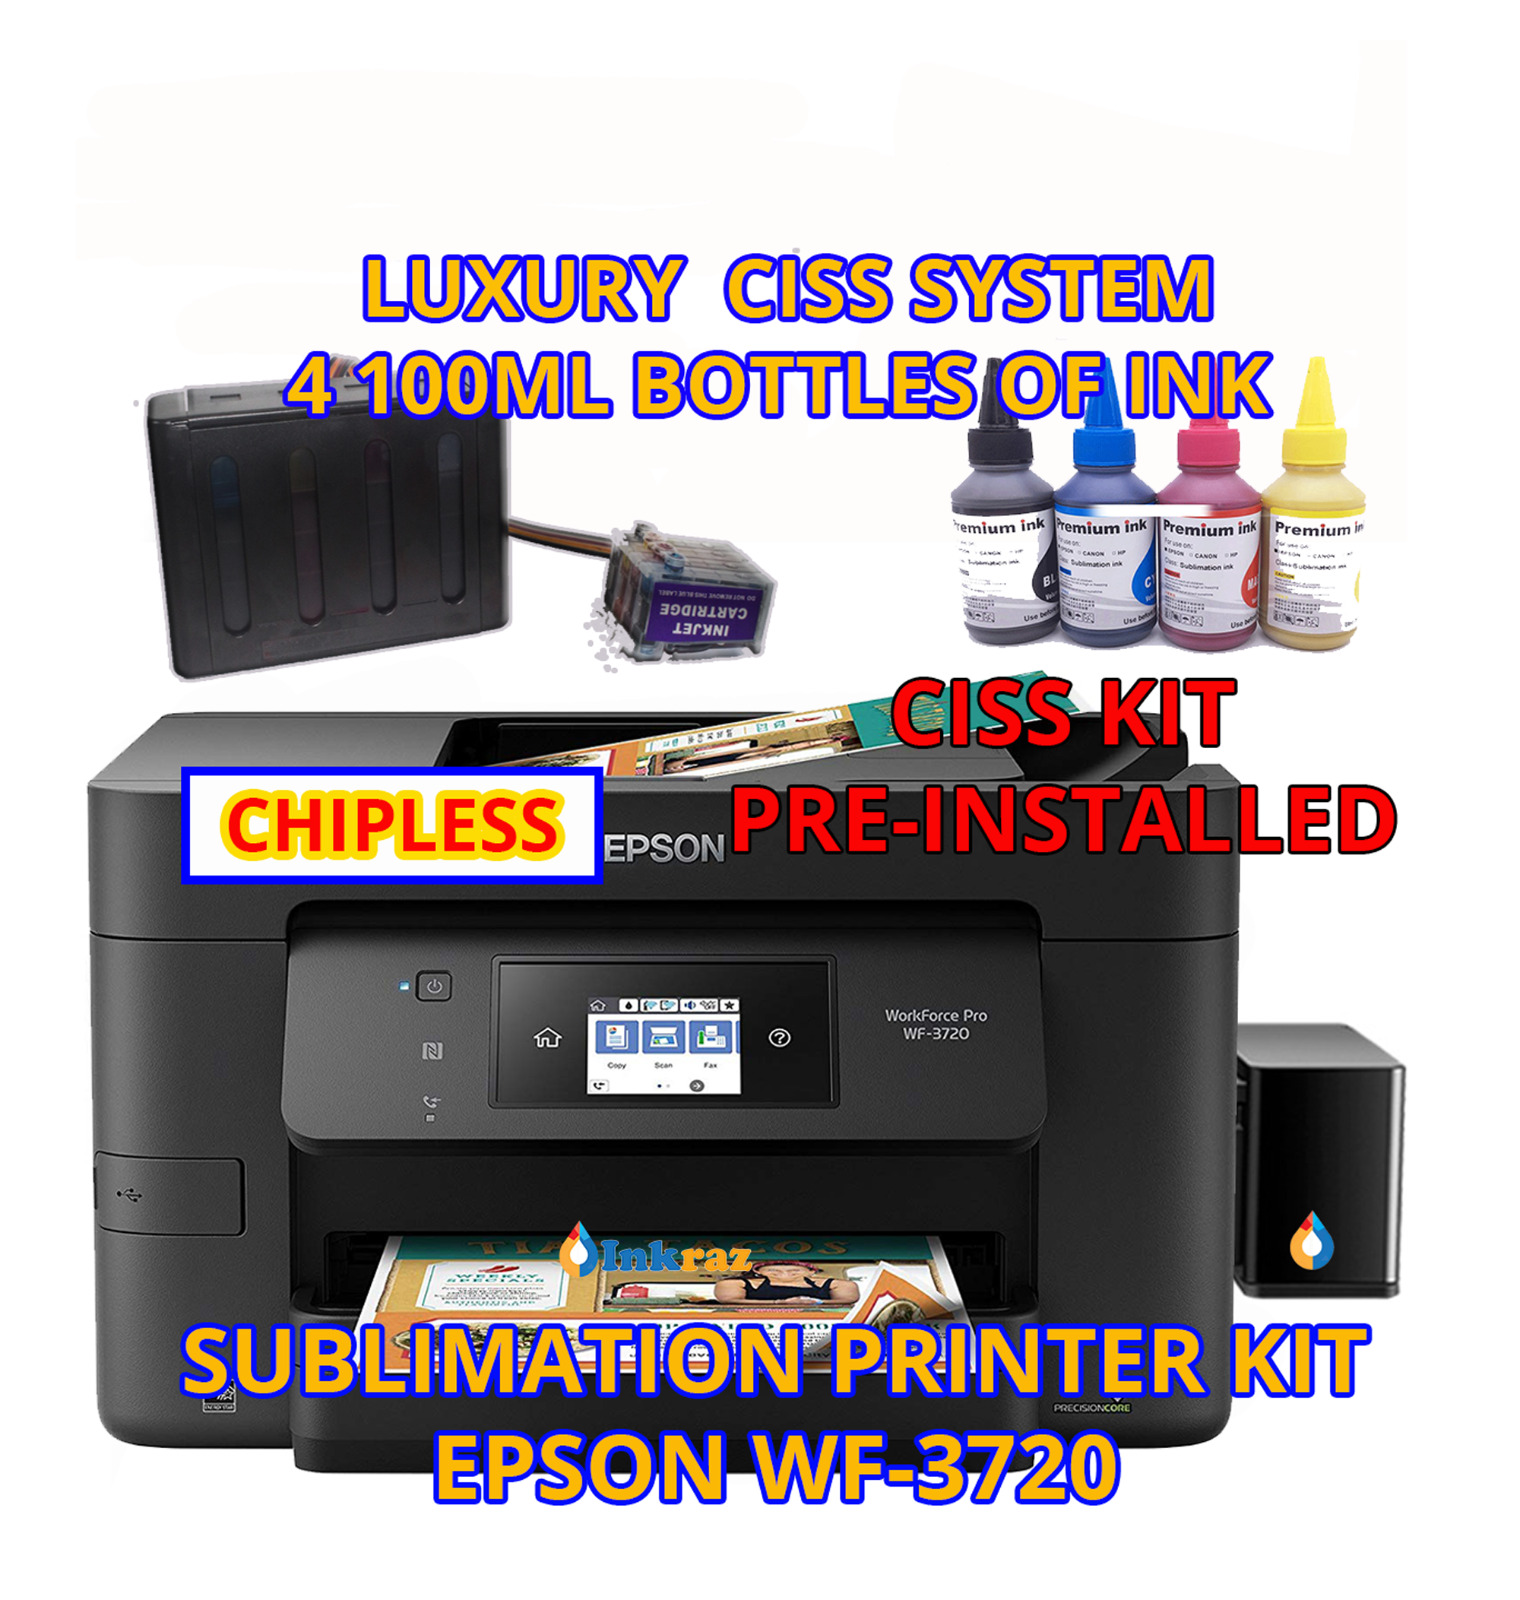 Epson WF-3720 Sublimation Printer Bundle with CISS Kit, Sublimation Ink. Buy it now for 393.99